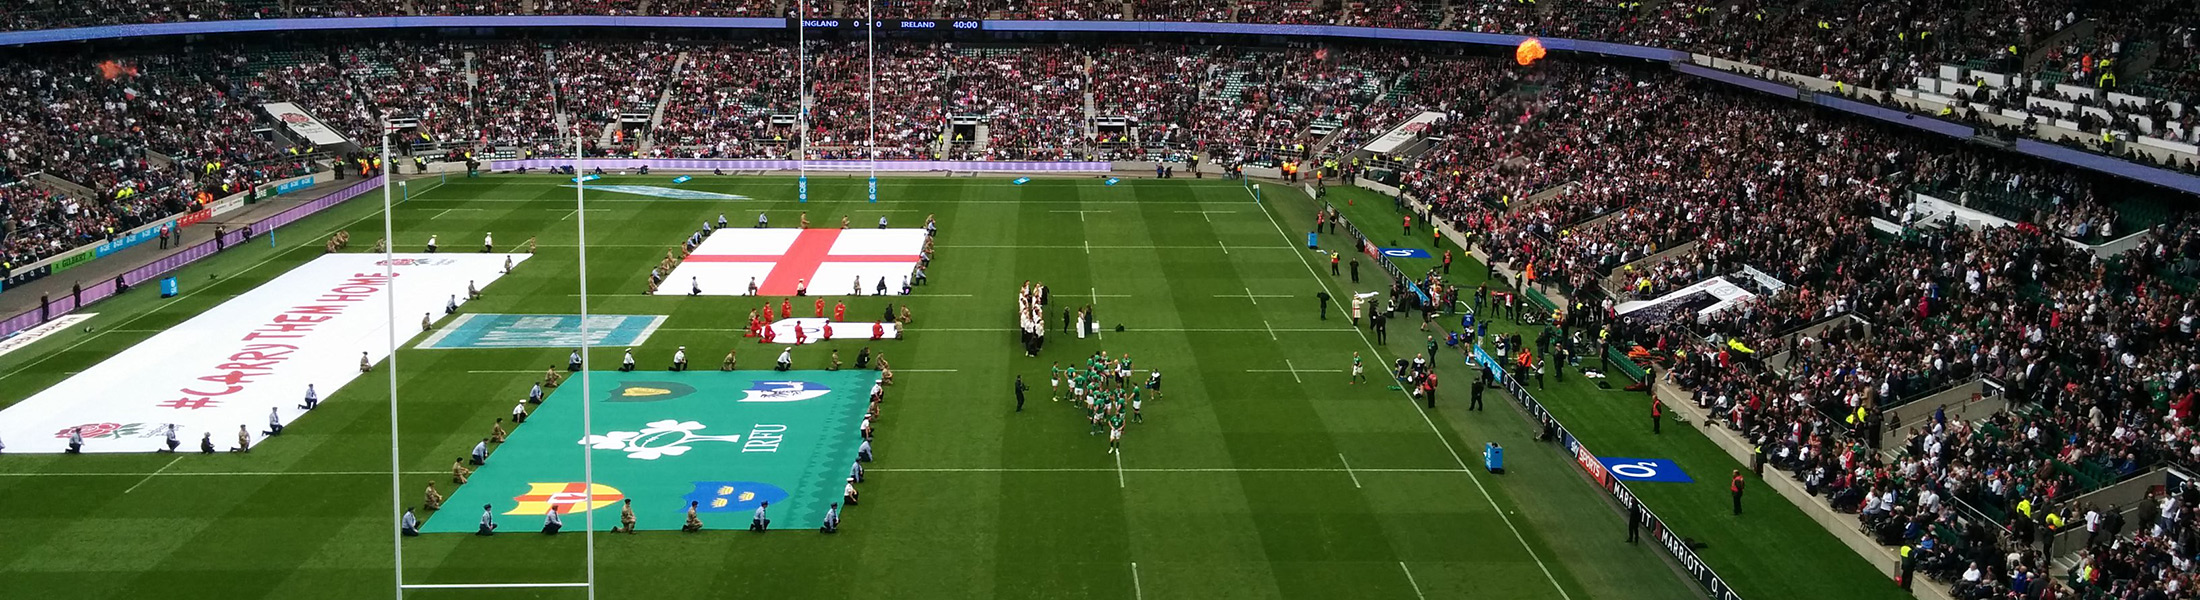 Filled stadium at the Rugby World Cup